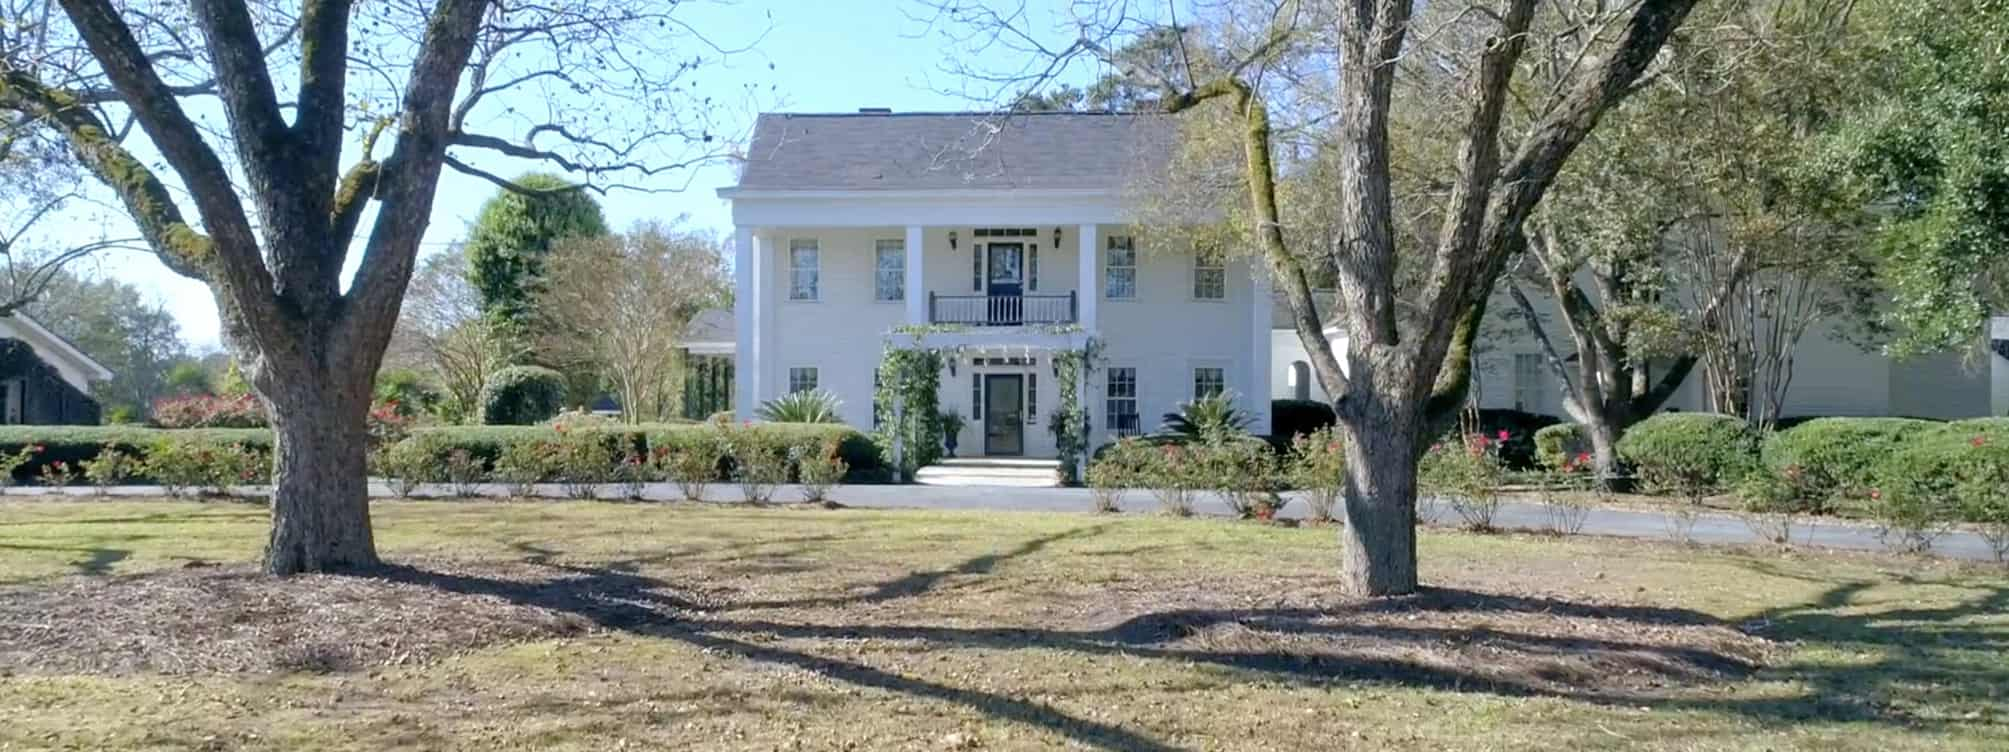 Historic Corley Mill House & Gardens